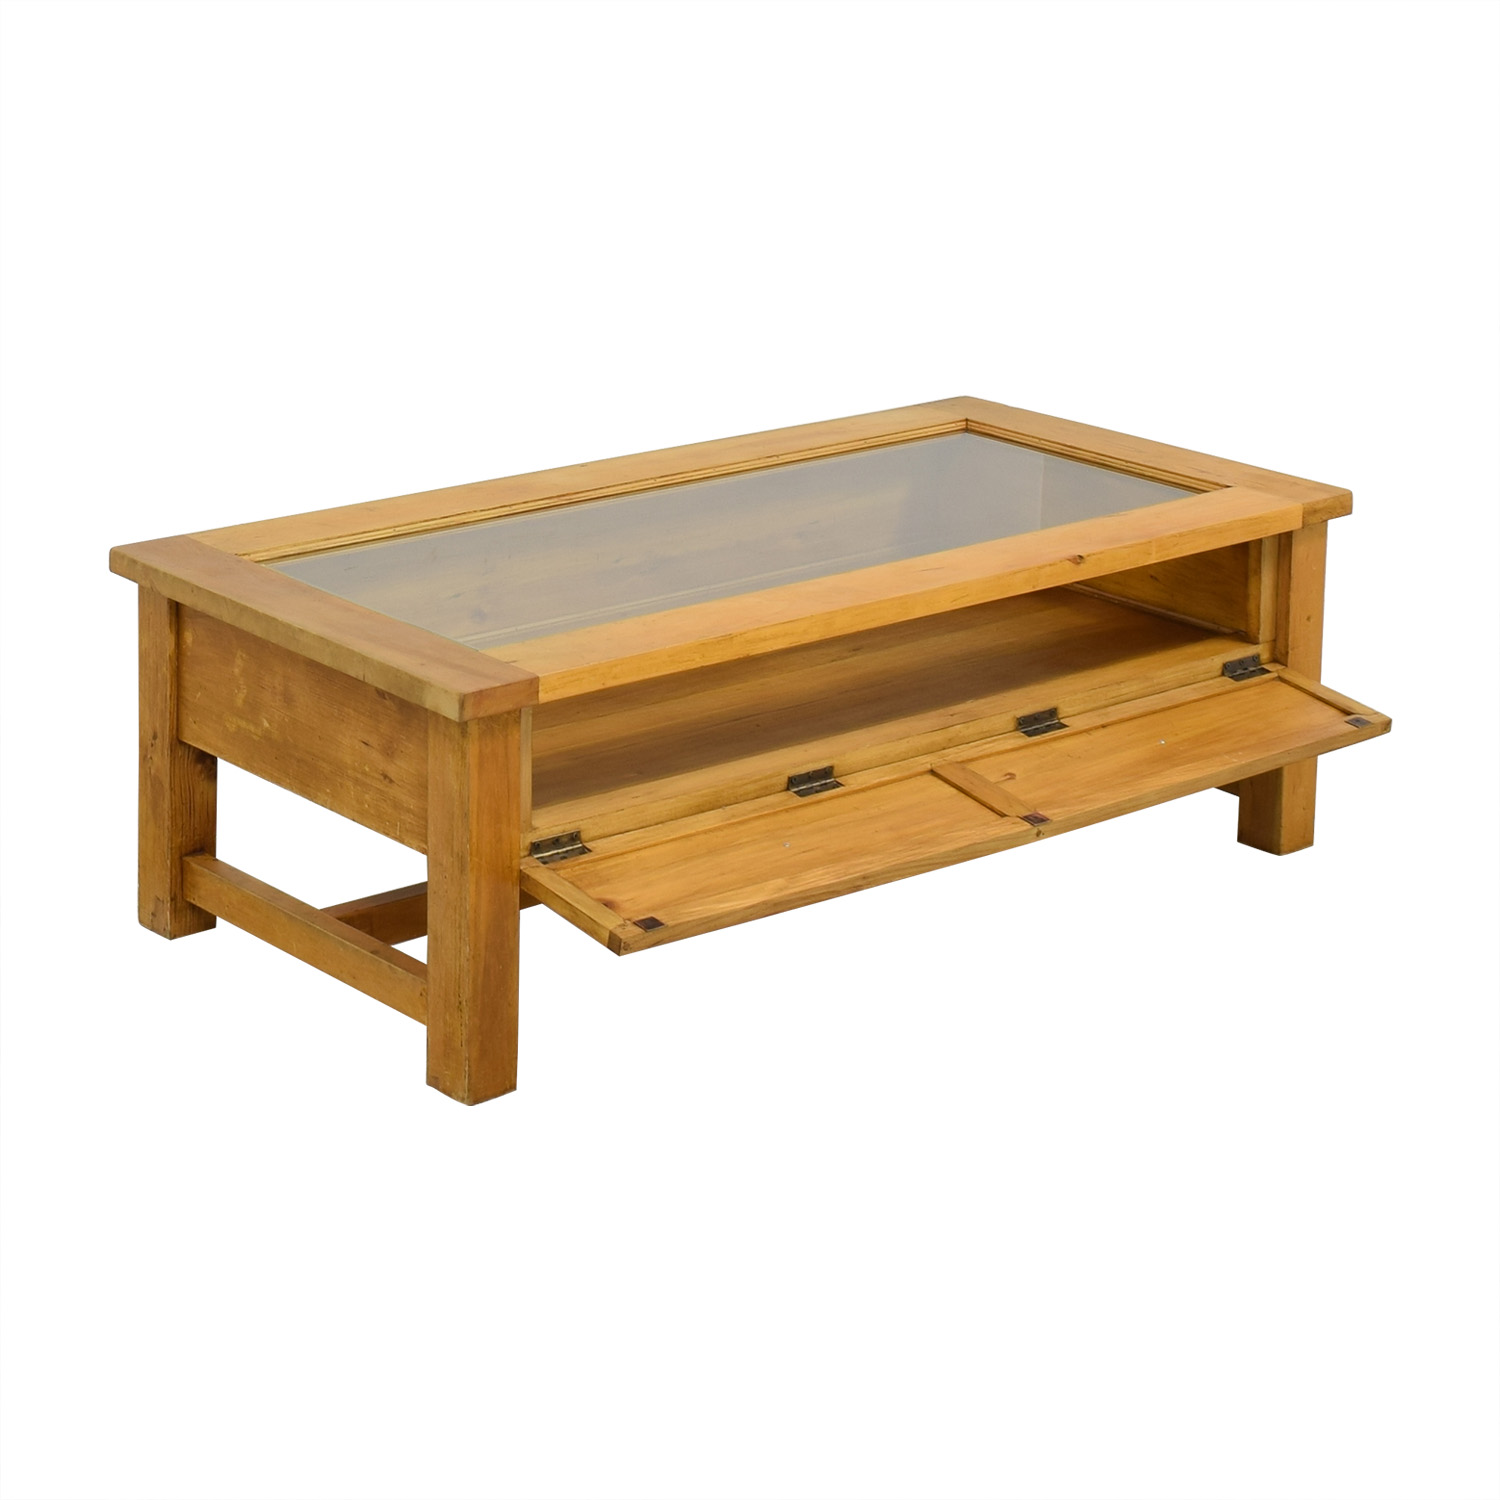 PJ Milligan Storage Coffee Table price